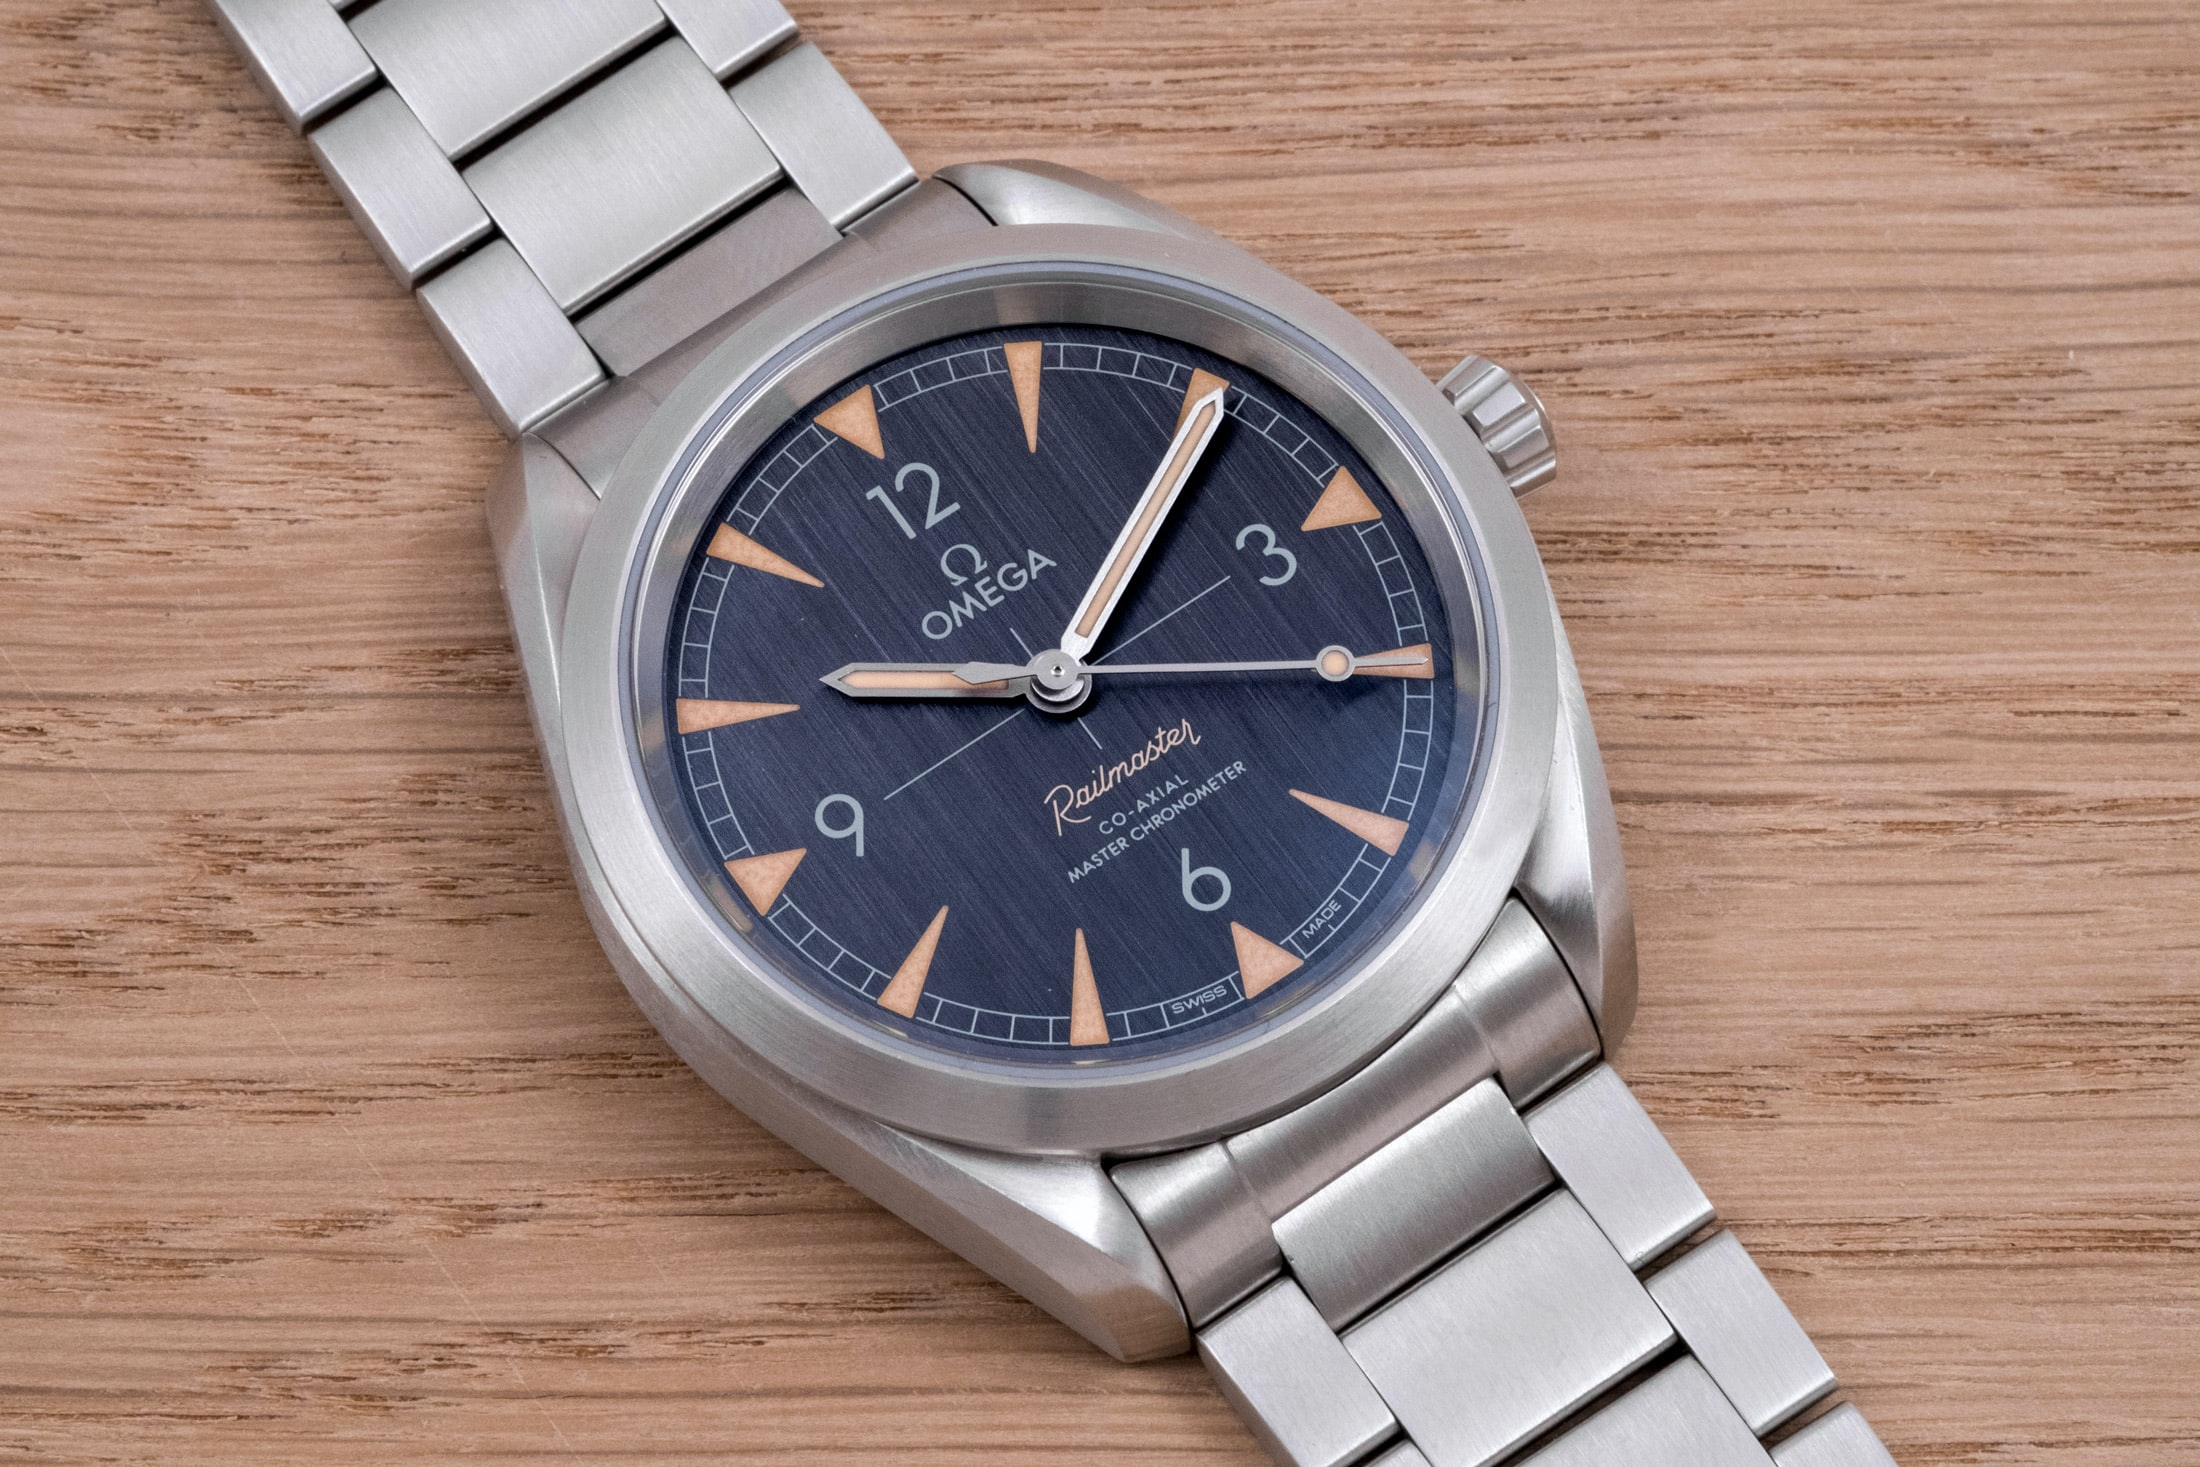 A Week On The Wrist: The Omega Seamaster Railmaster A Week On The Wrist: The Omega Seamaster Railmaster DSCF6144